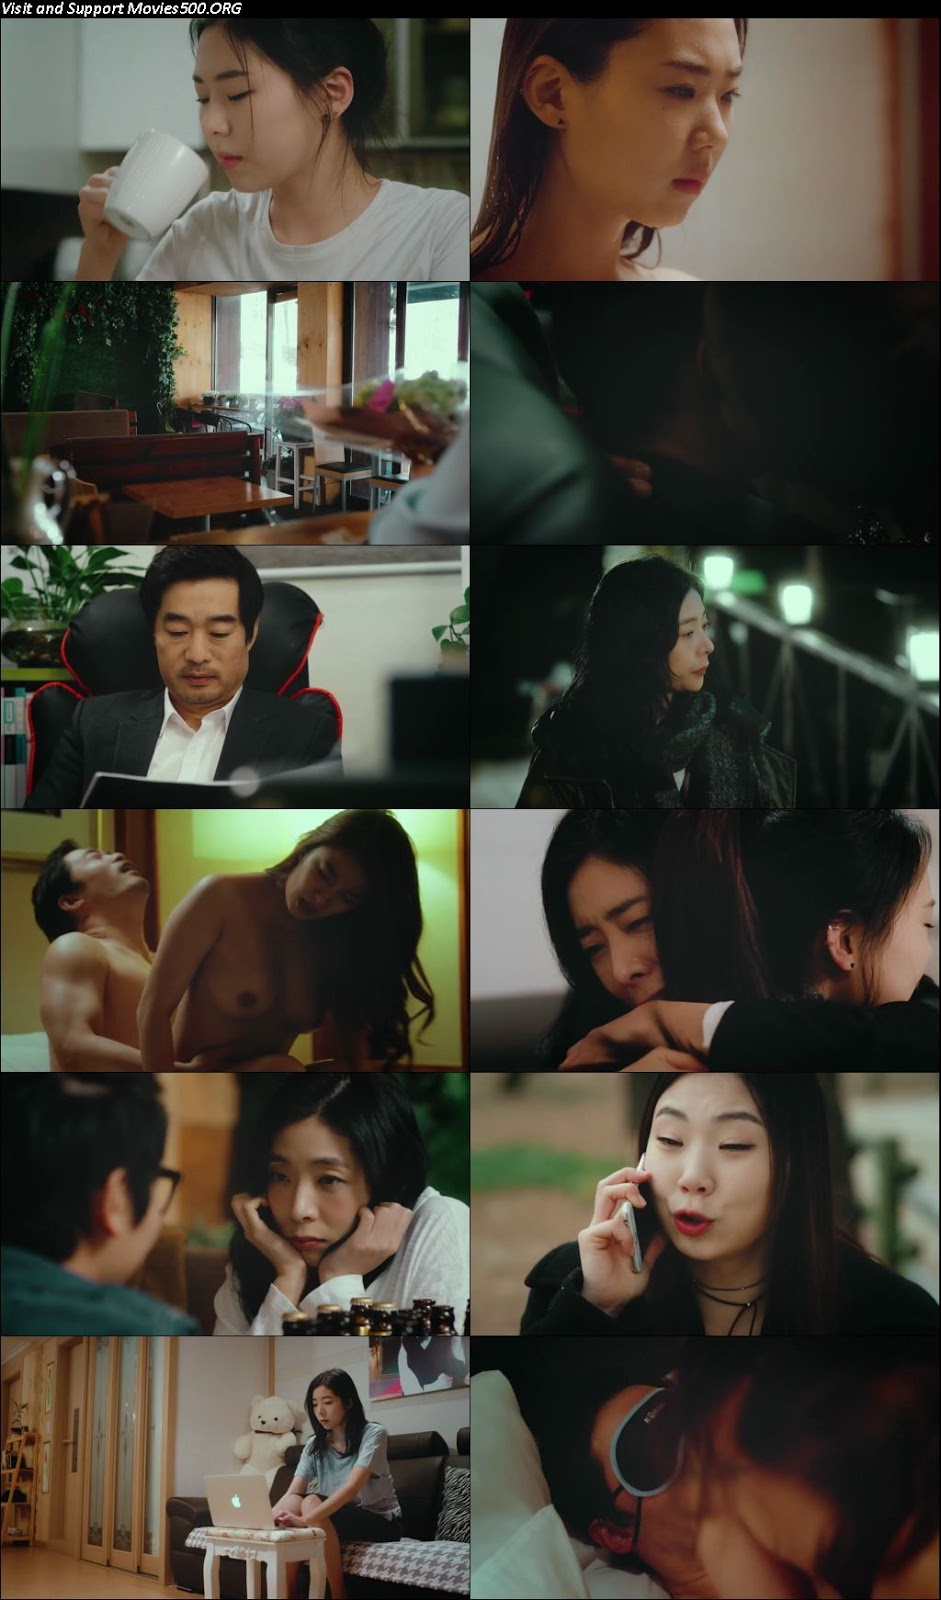 The Sisters's Scandal 2017 Adult 18+ Movie HDRip 720P 600MB at softwaresonly.com